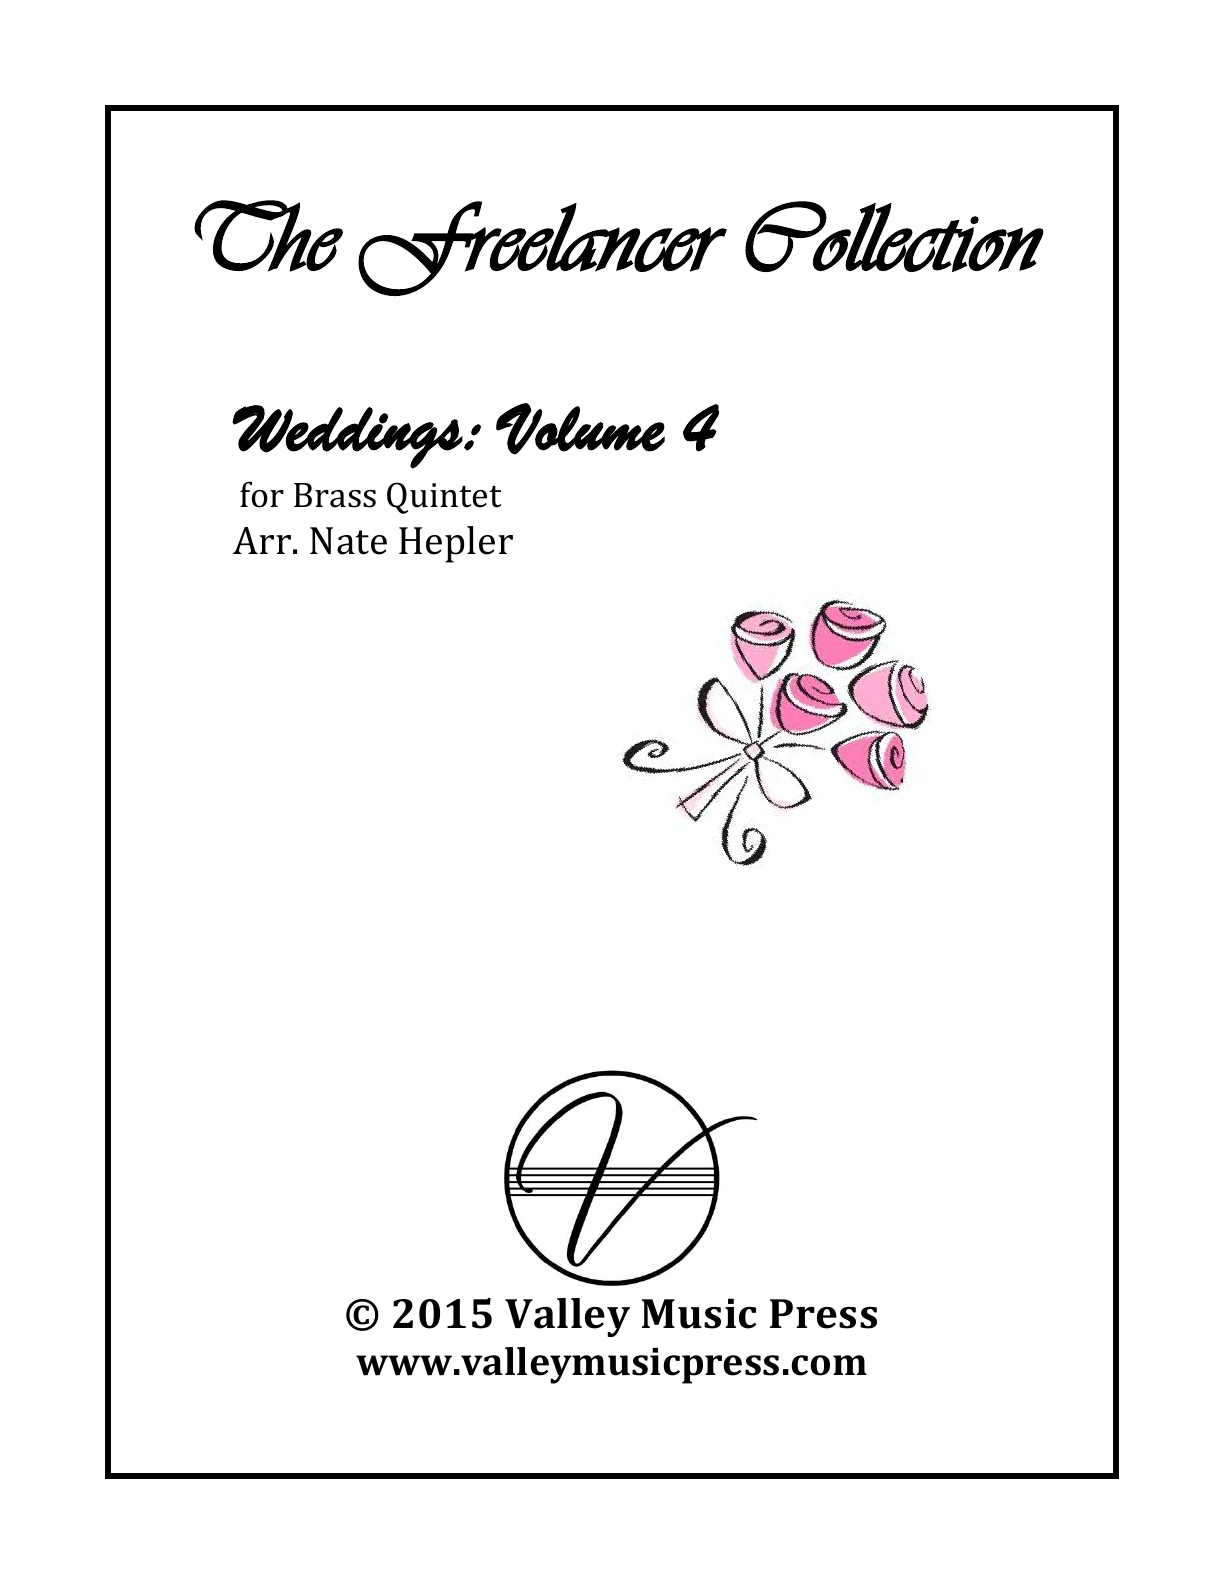 Hepler - The Freelancer Collection - Weddings: Vol. 4 (BQ) - Click Image to Close